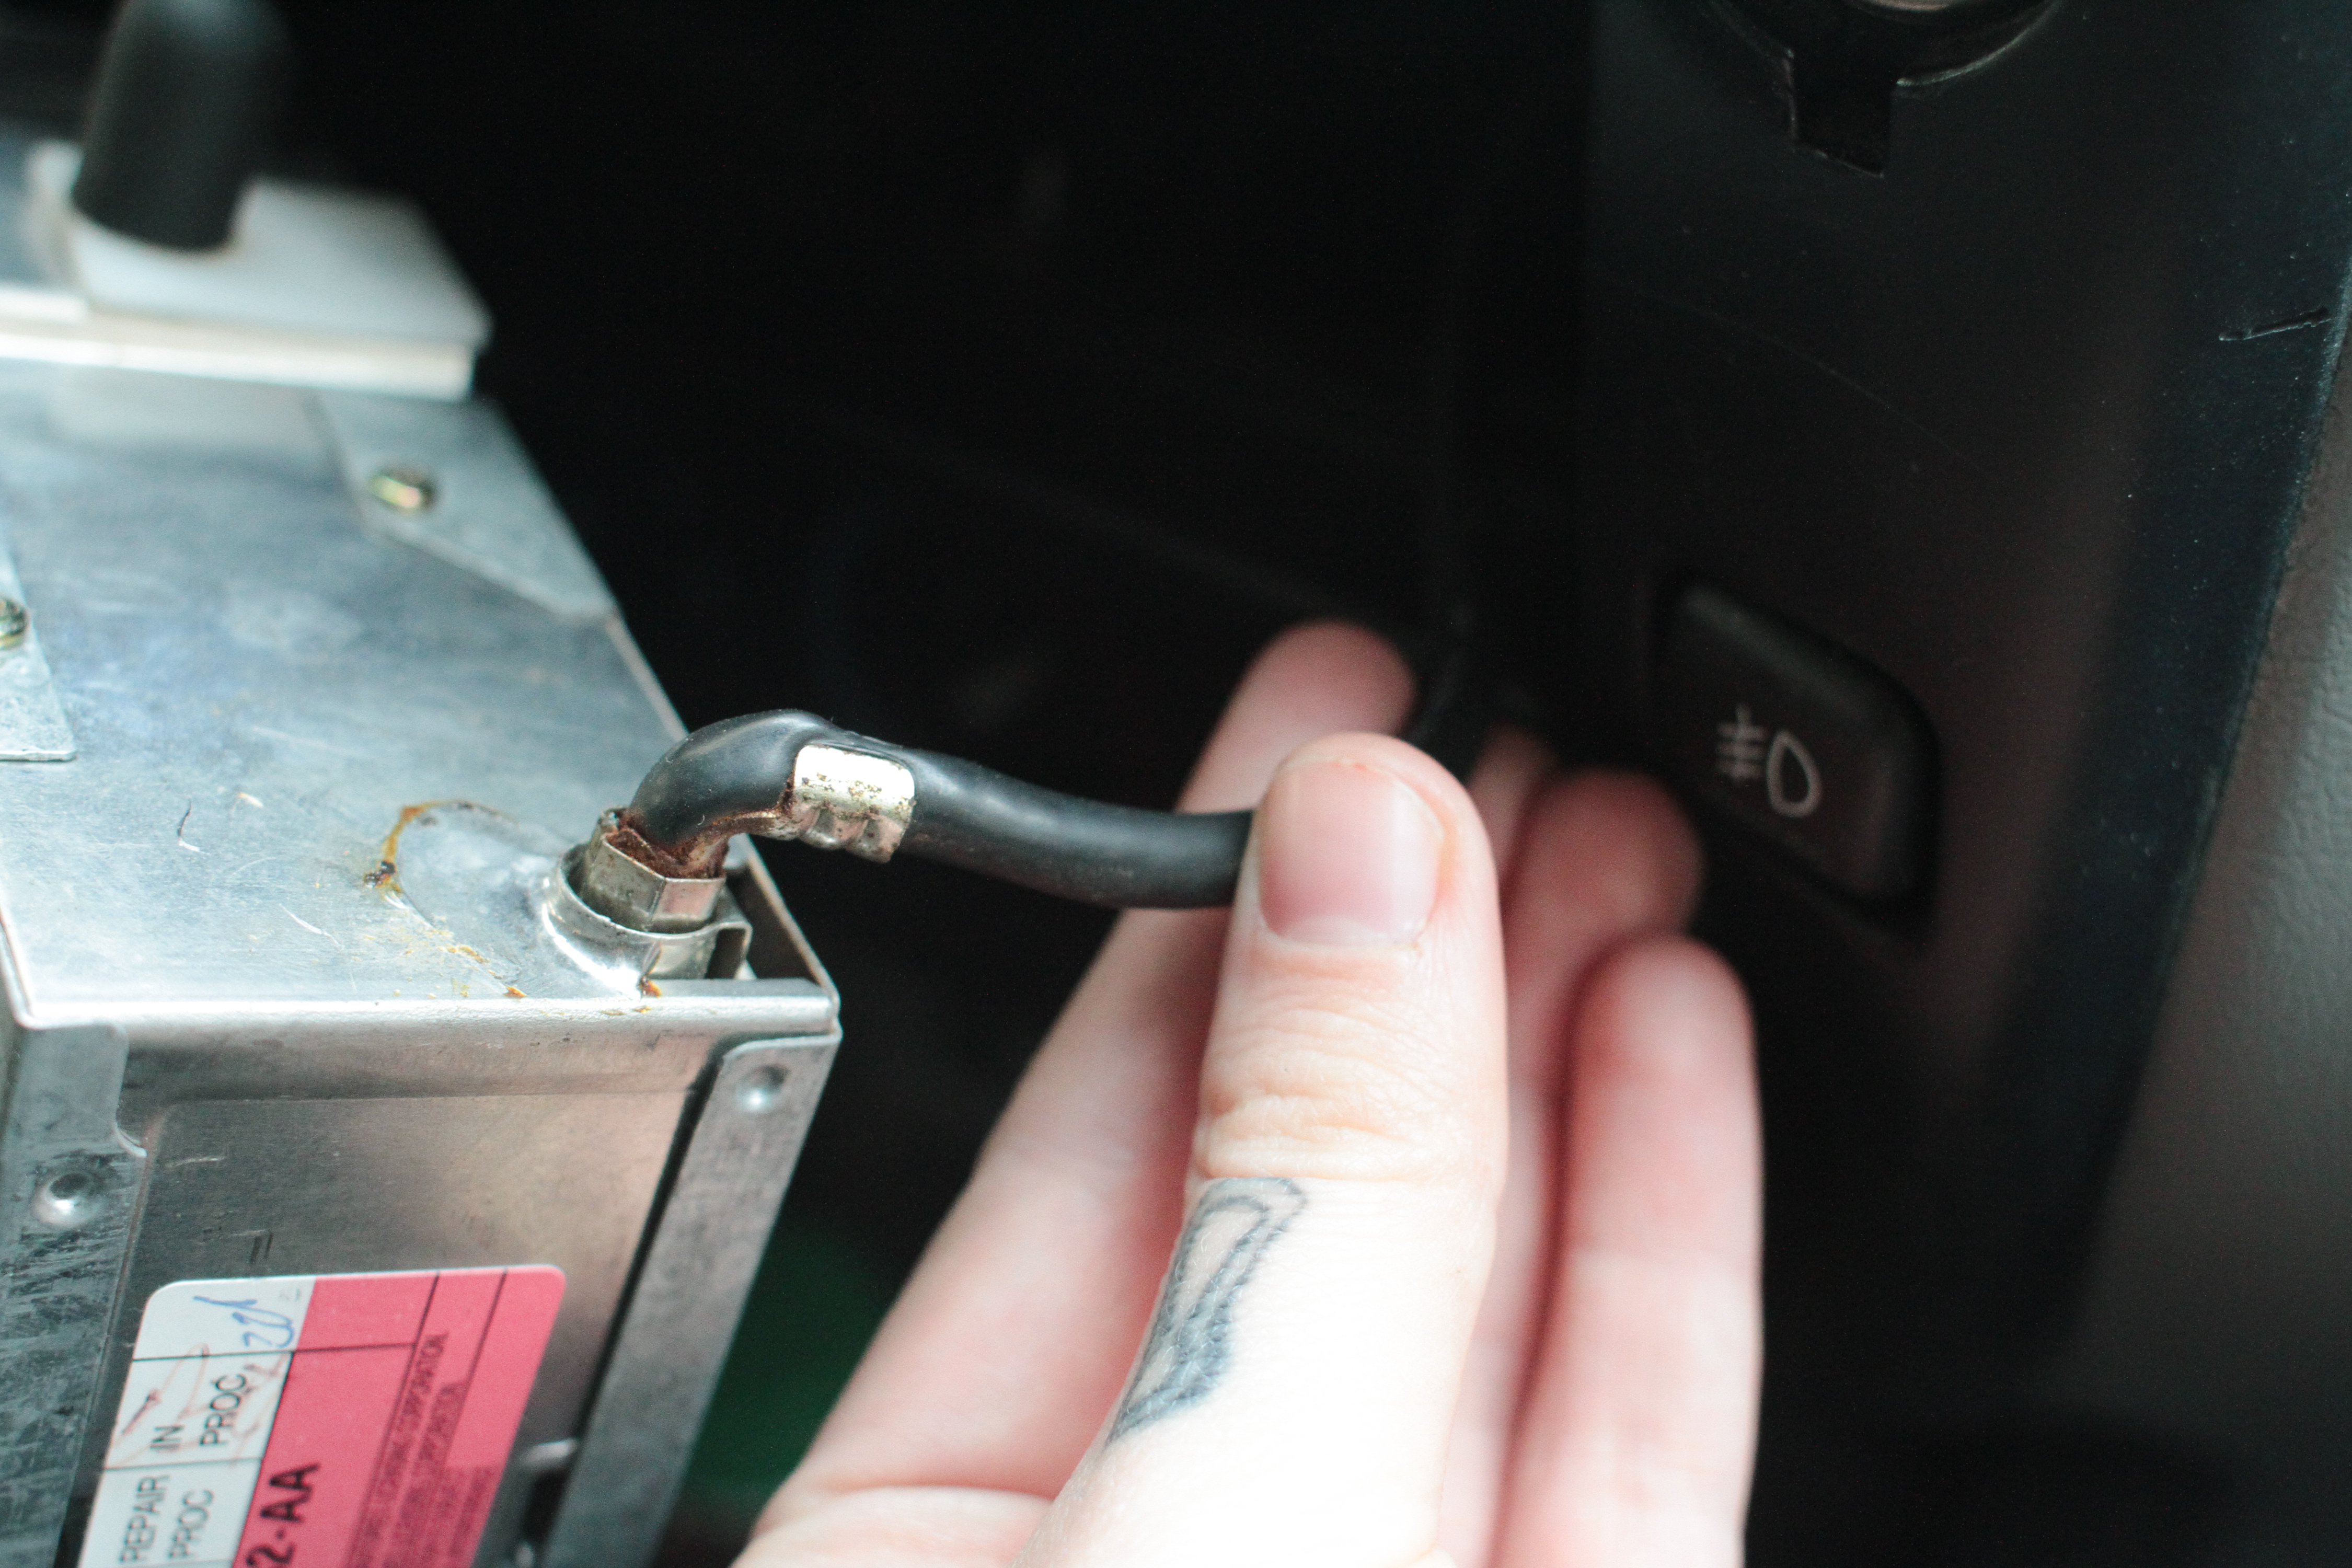 How to Remove a Ford Ranger Stereo | It Still Runs Pulled Car Stereo Wire Harness on pioneer car stereo wiring harness, car stereo remote control, car stereo fuse, car stereo color wiring diagram, cd changer wire harness, car stereo housing, car stereo wiring guide, car stereo cover, computer wire harness, car stereo circuit board, car stereo cooling fan, car stereo speakers, cd player wire harness, car stereo console part, car audio harness, car stereo radio, car stereo power supply,